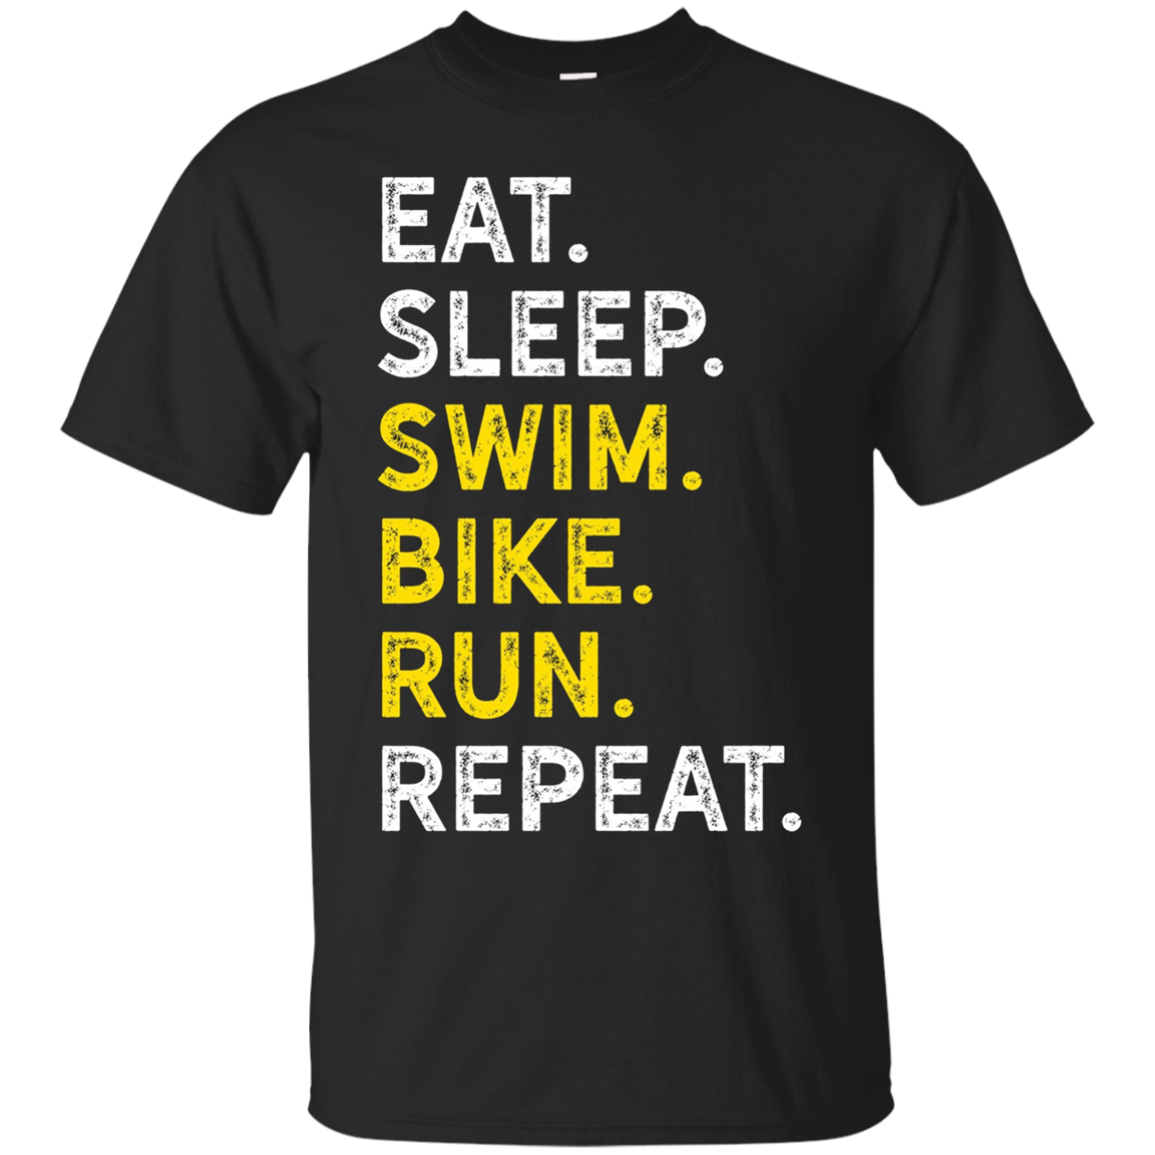 Eat Sleep Swim Bike Run Repeat - Funny Triathlon Routine Tee